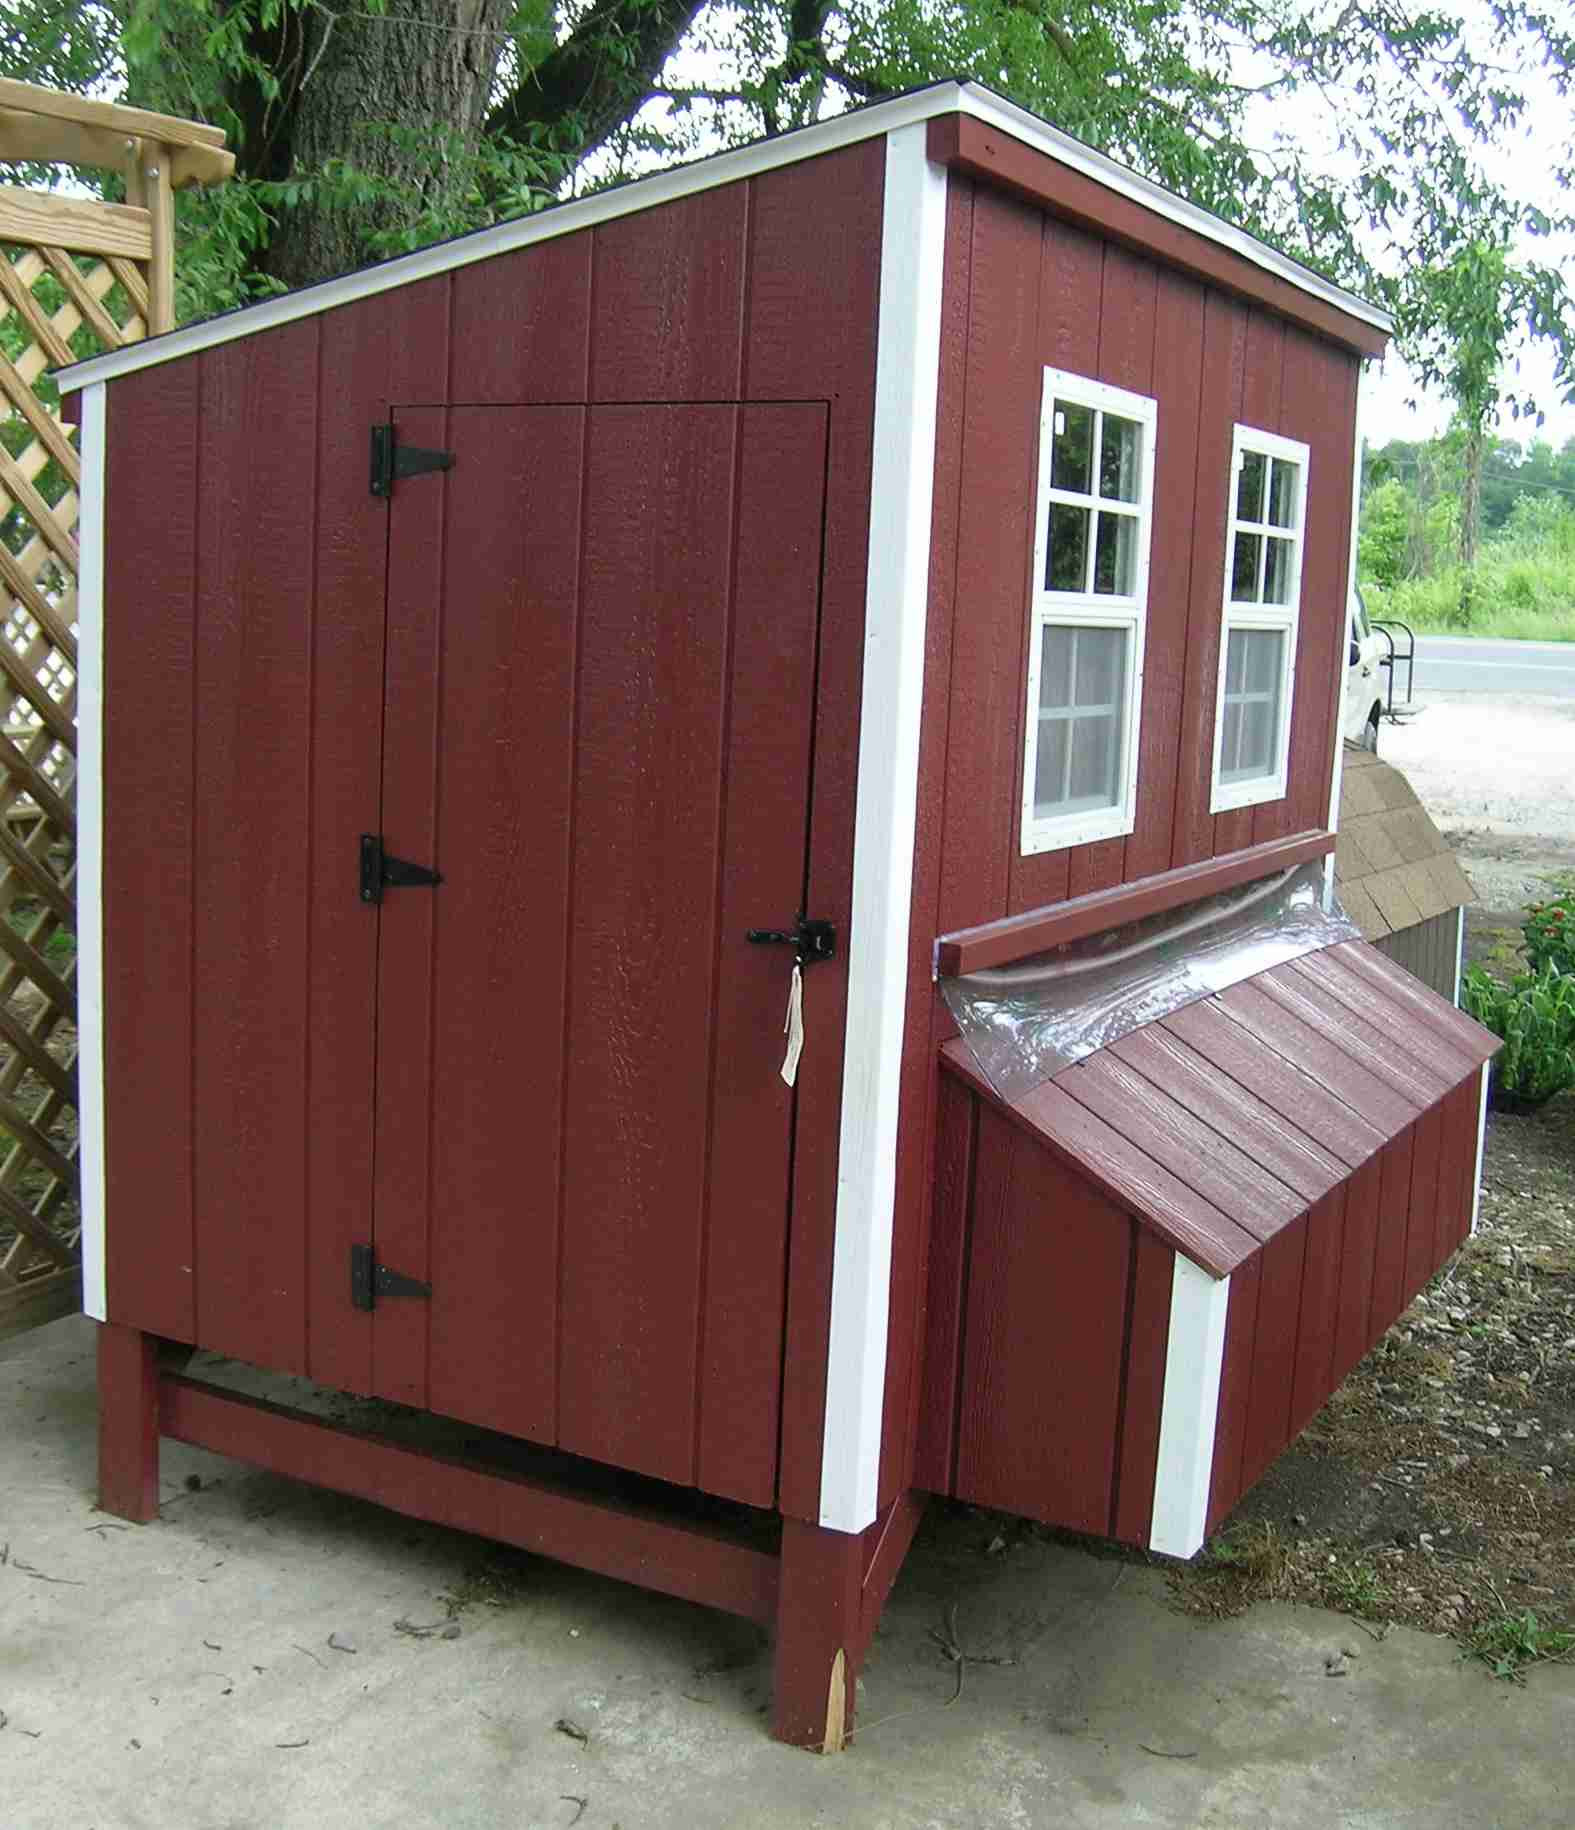 34 Free Chicken Coop Plans Ideas That You Can Build On: Mina: Chicken Coop Plan For 12 Chickens